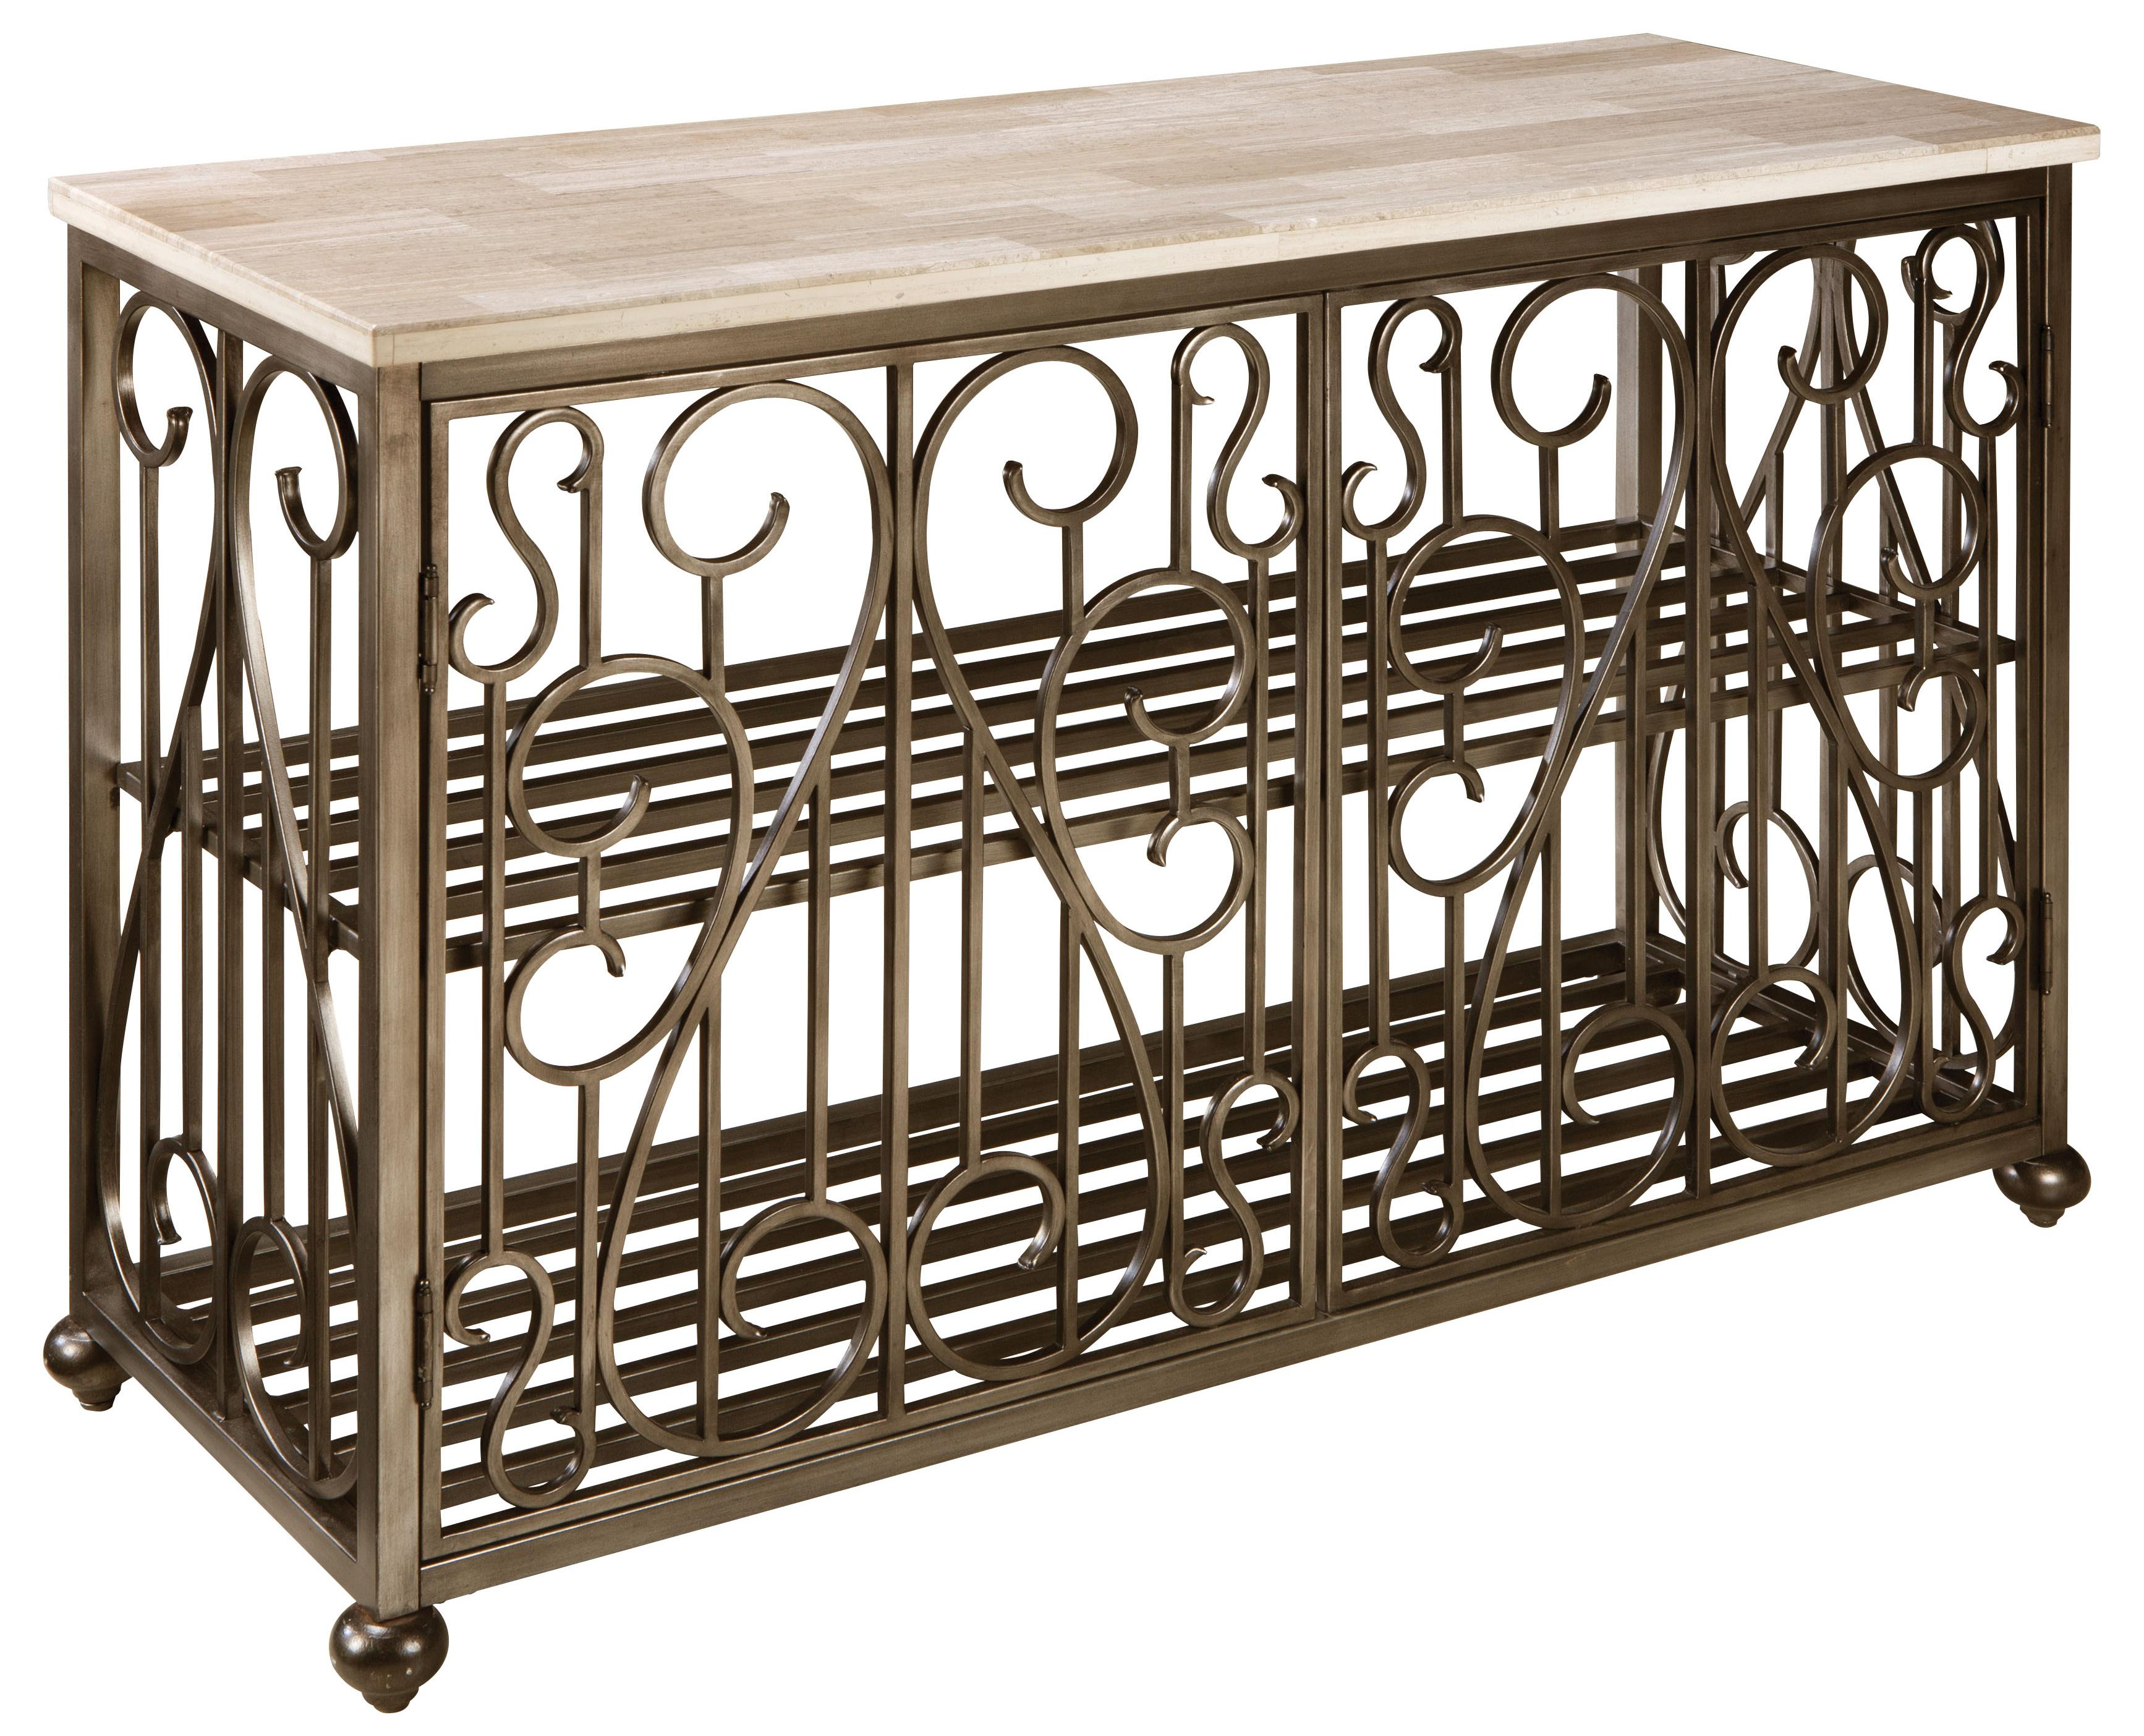 Standard Furniture Toscana  Console Table - Item Number: 27416